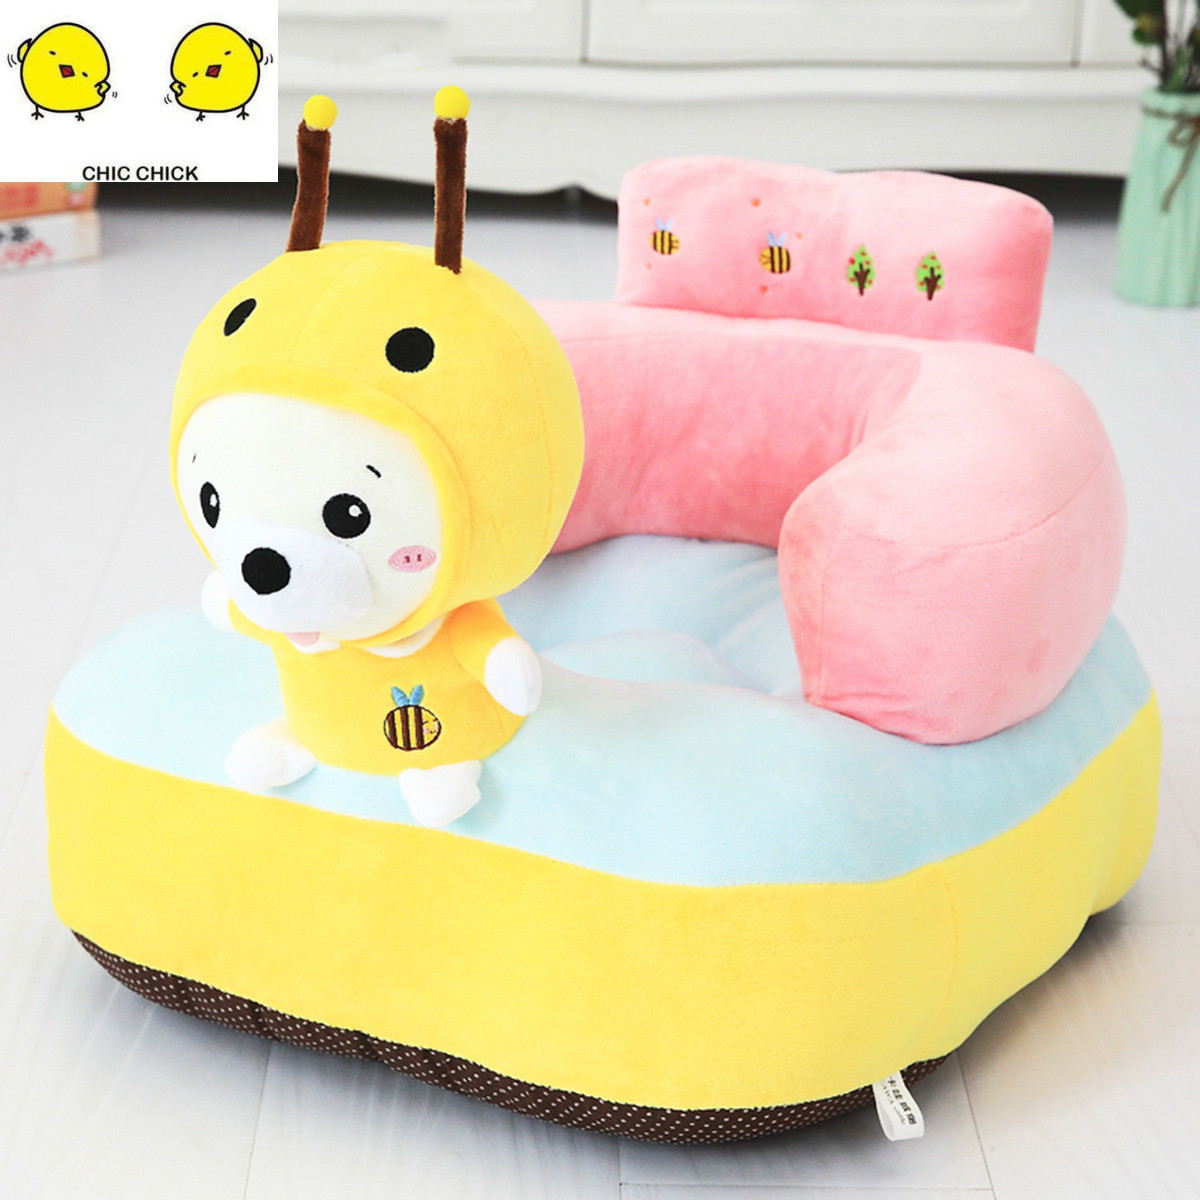 Babies Learn to Sit Sofa Babies Plush Toys Children Eating Safety Seats Birthday Gifts For Boy And Girl